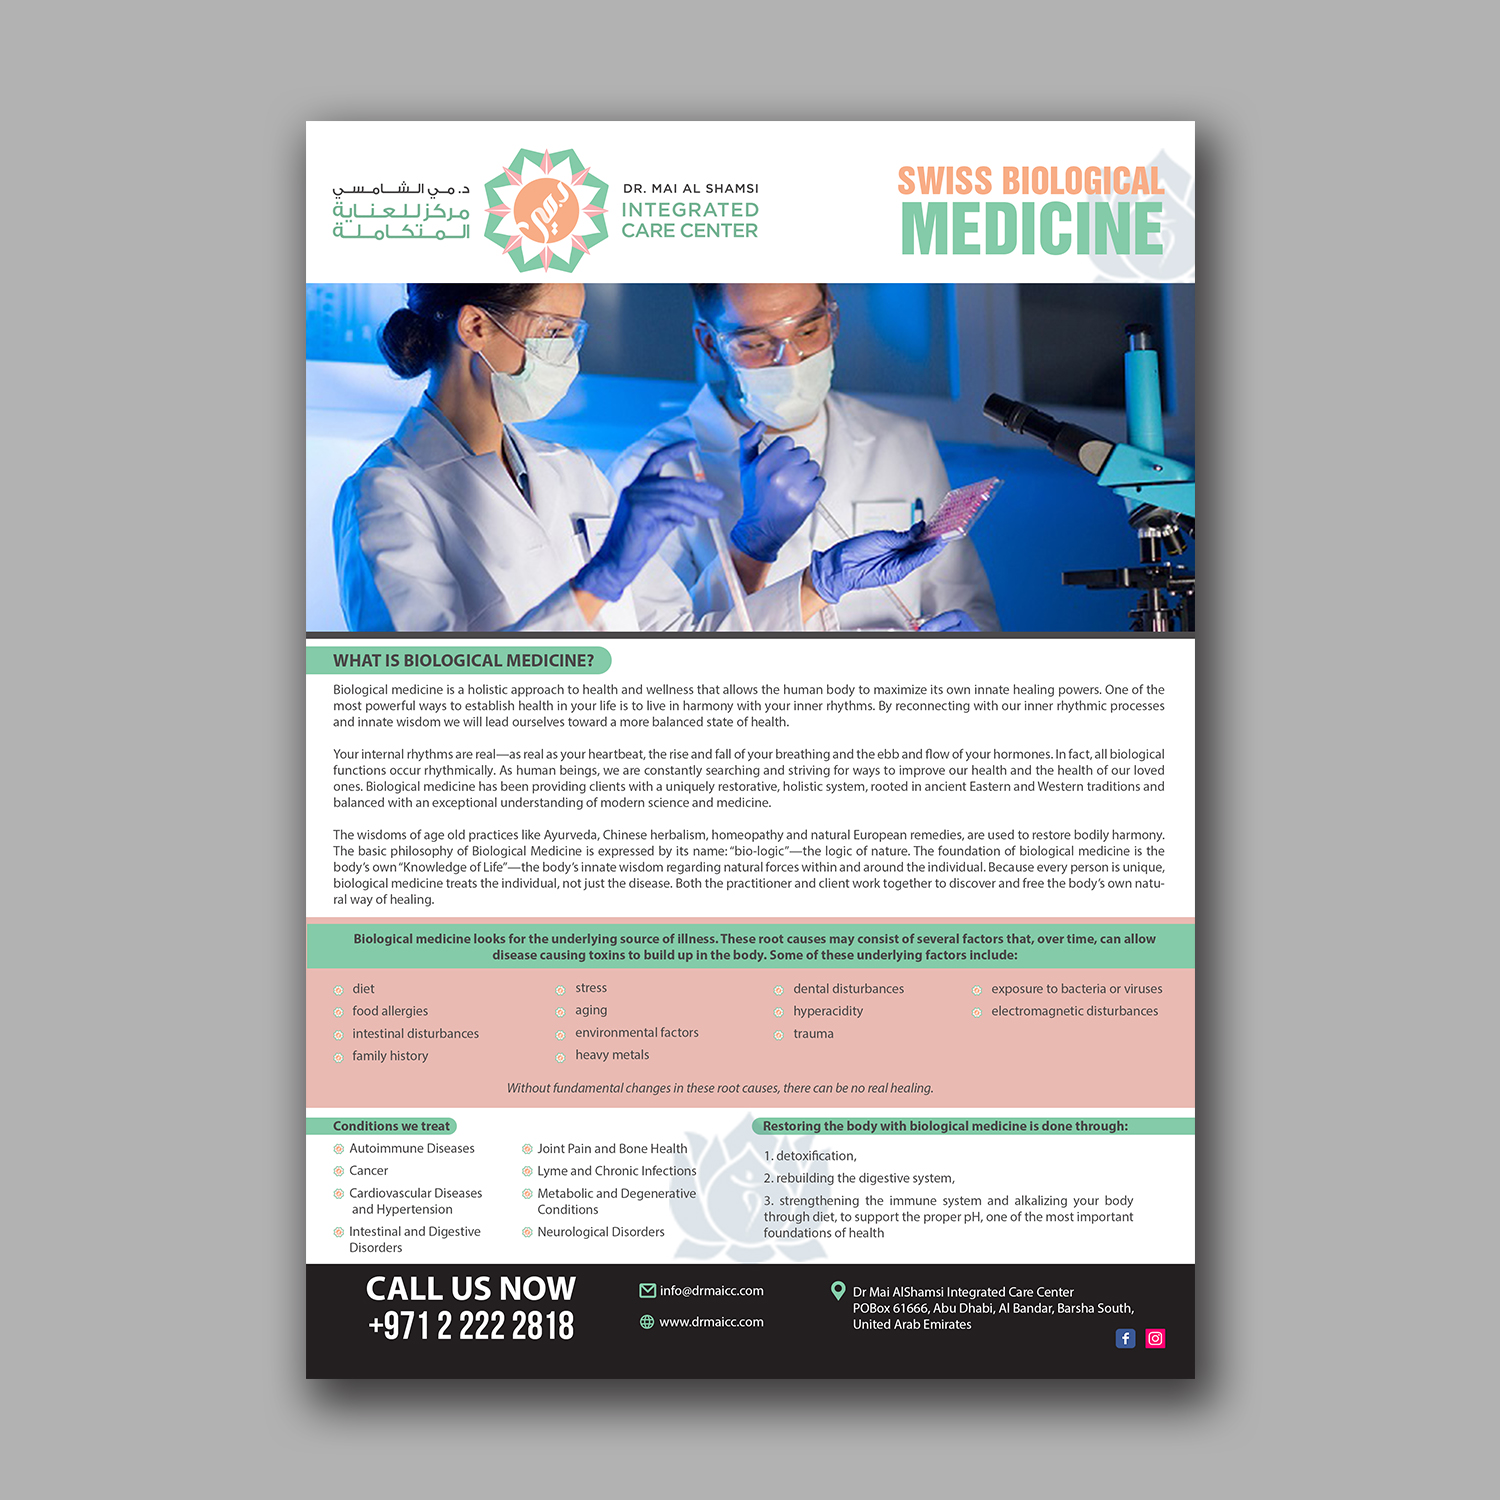 Bold Serious Health Care Flyer Design For A Company By Hih7 Design 15484665